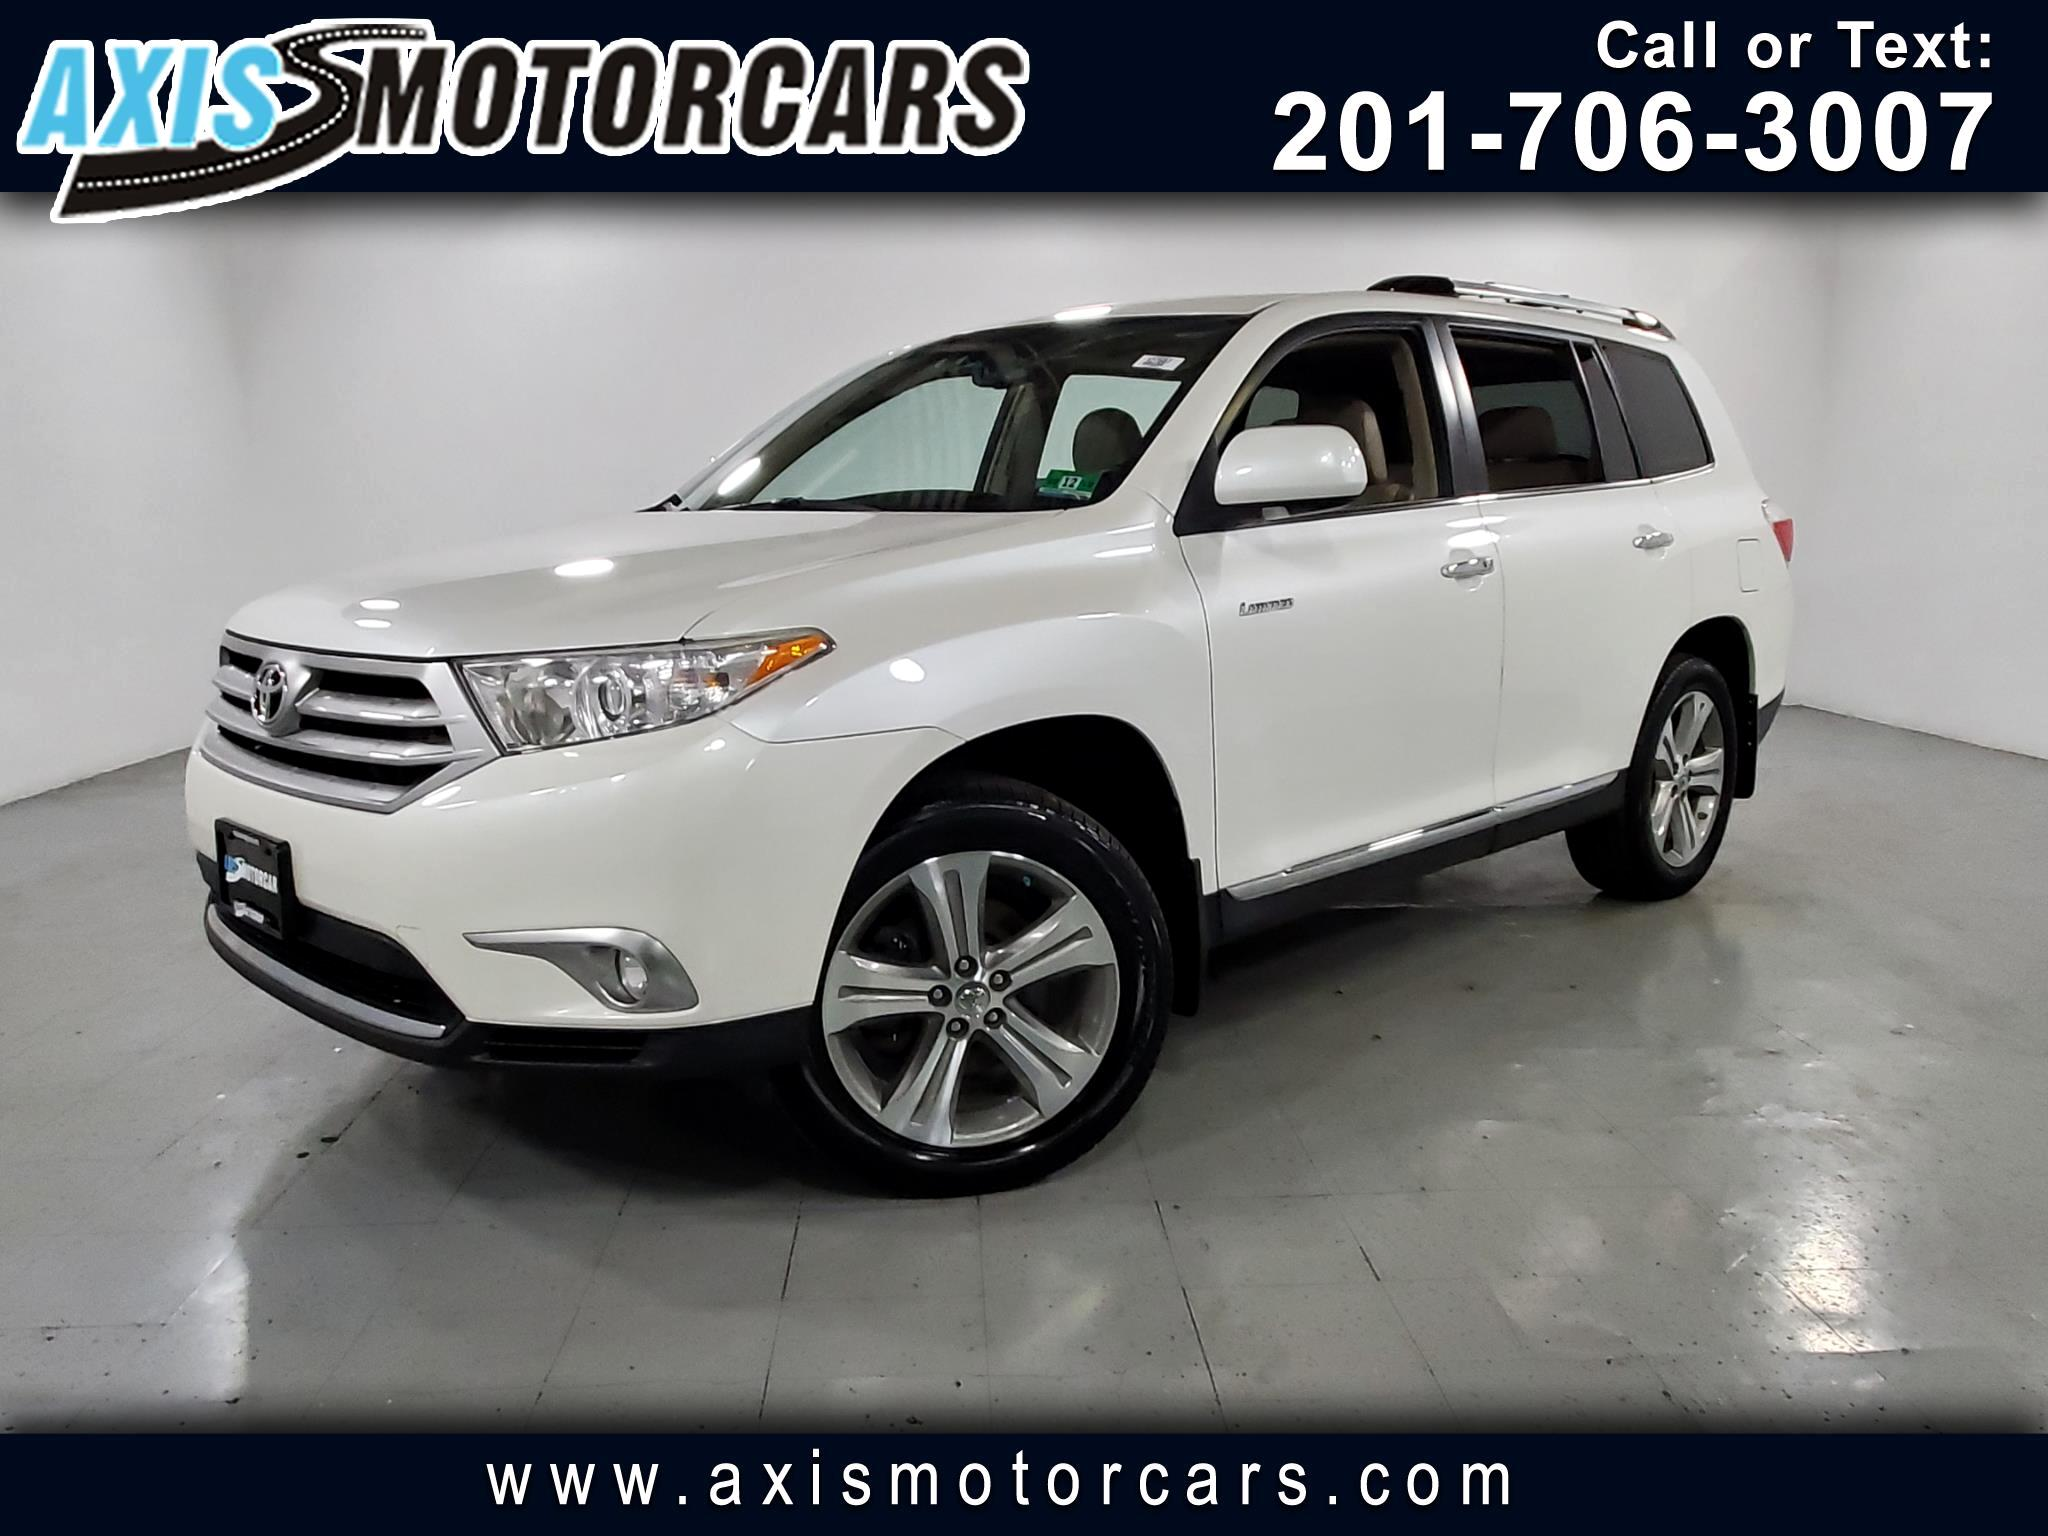 2012 Toyota Highlander Limited w/Navigation Backup Camera JBL Sound